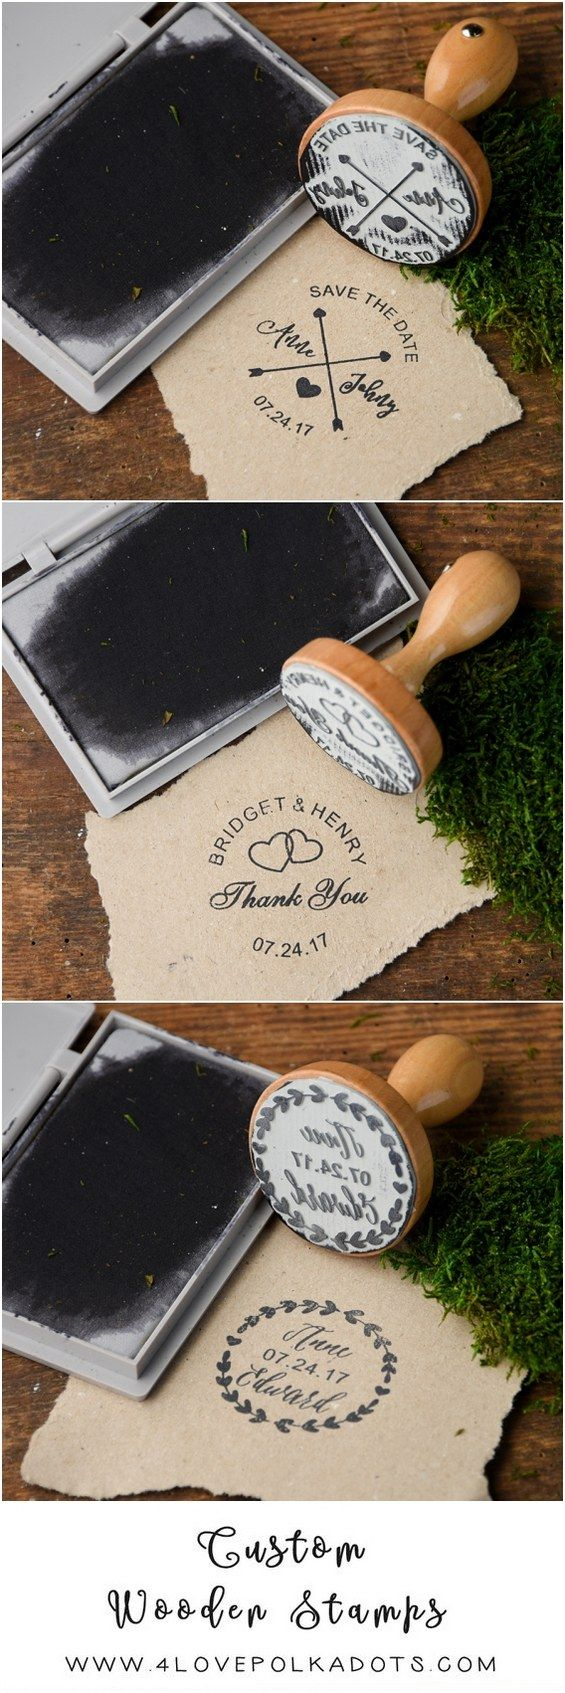 wedding stamps wedding stamps Rustic country wooden wedding stamps rusticwedding countrywedding